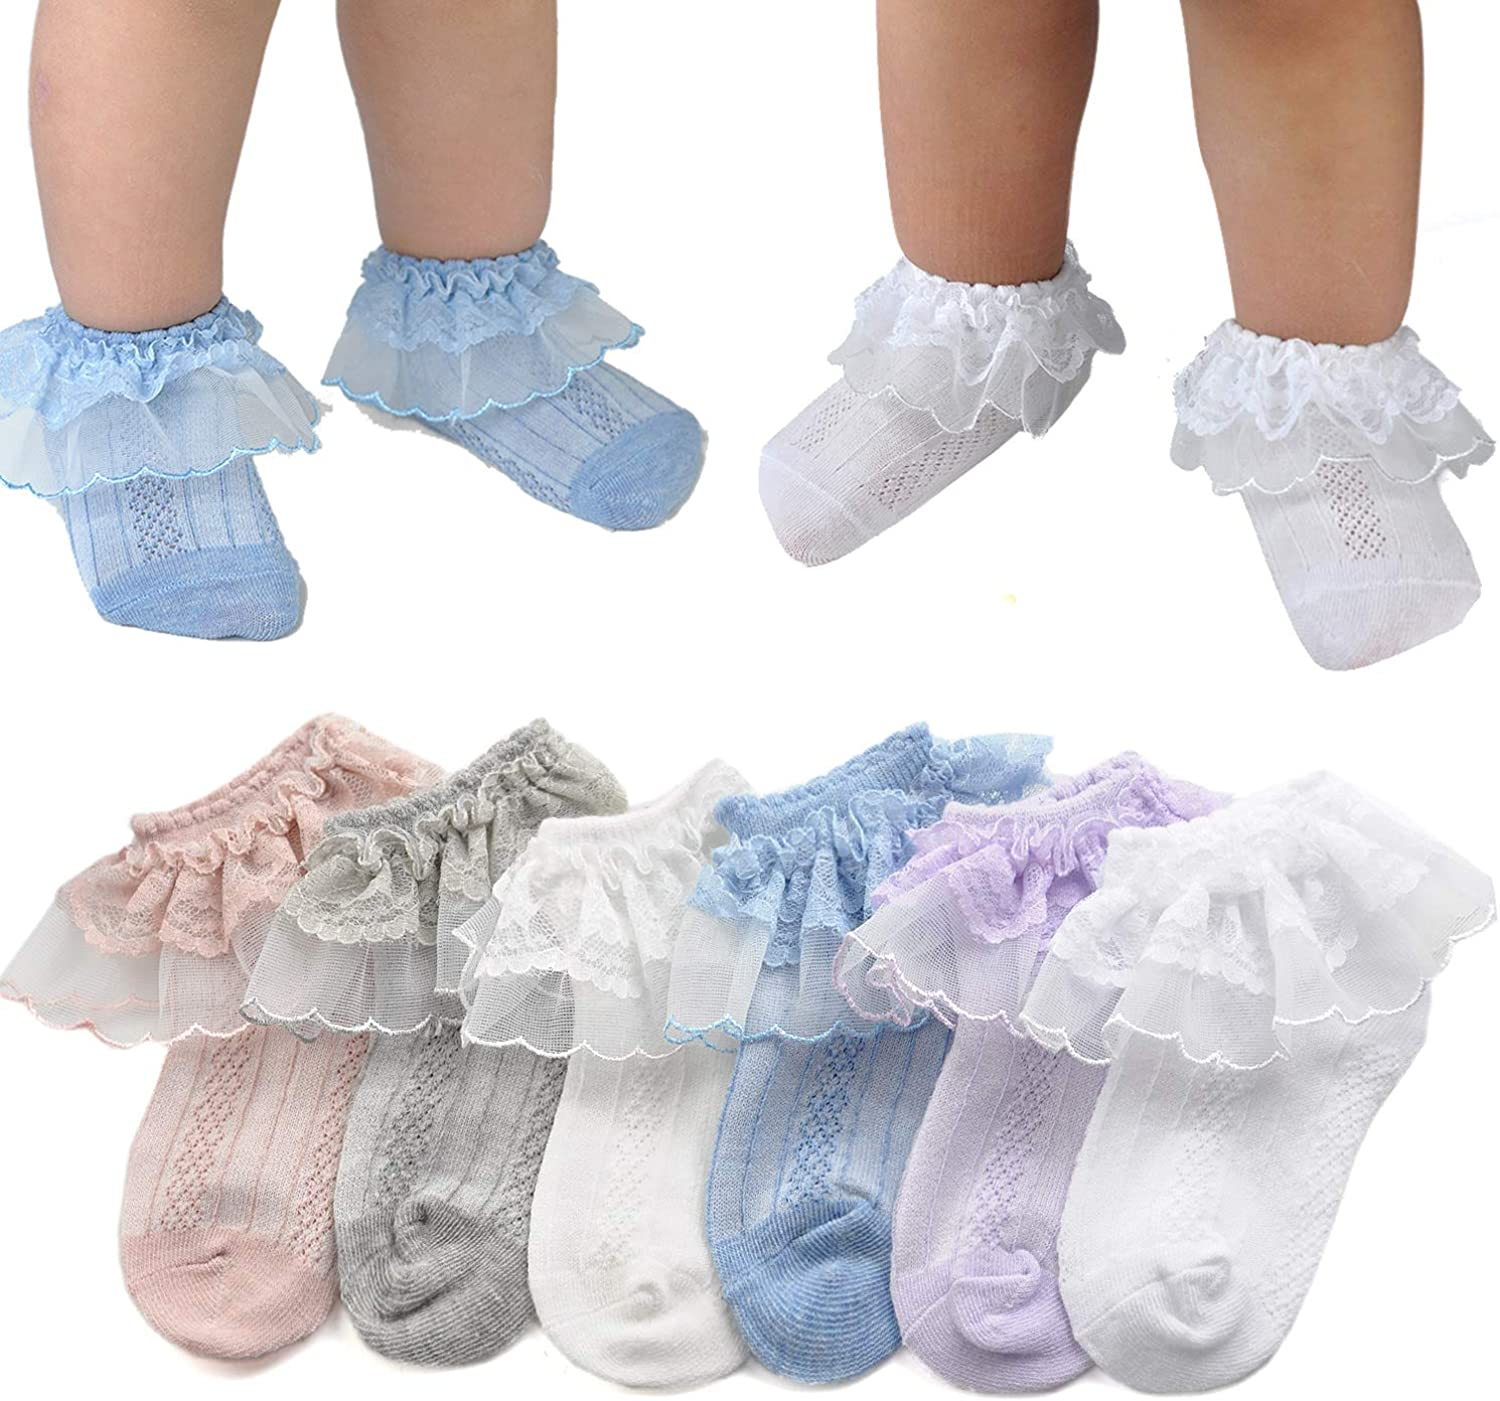 Epeius Little Girls' Princess Lace Top Dressy Socks (Pack of 3/6)